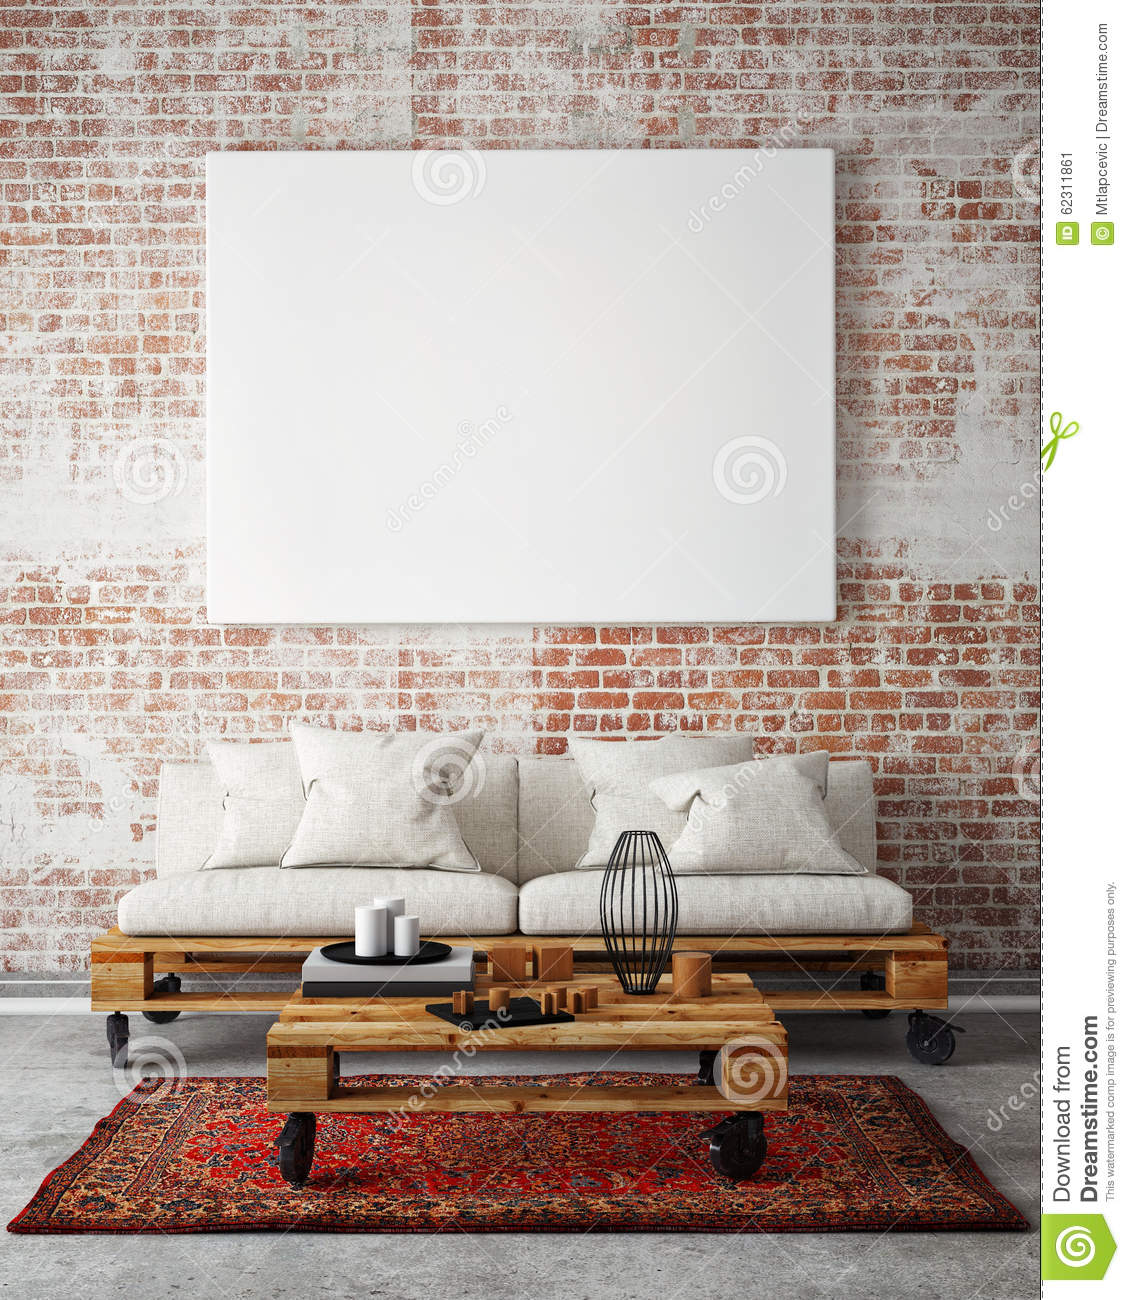 blank living room wall illustration poster pregnancy happy time trimesters 16378